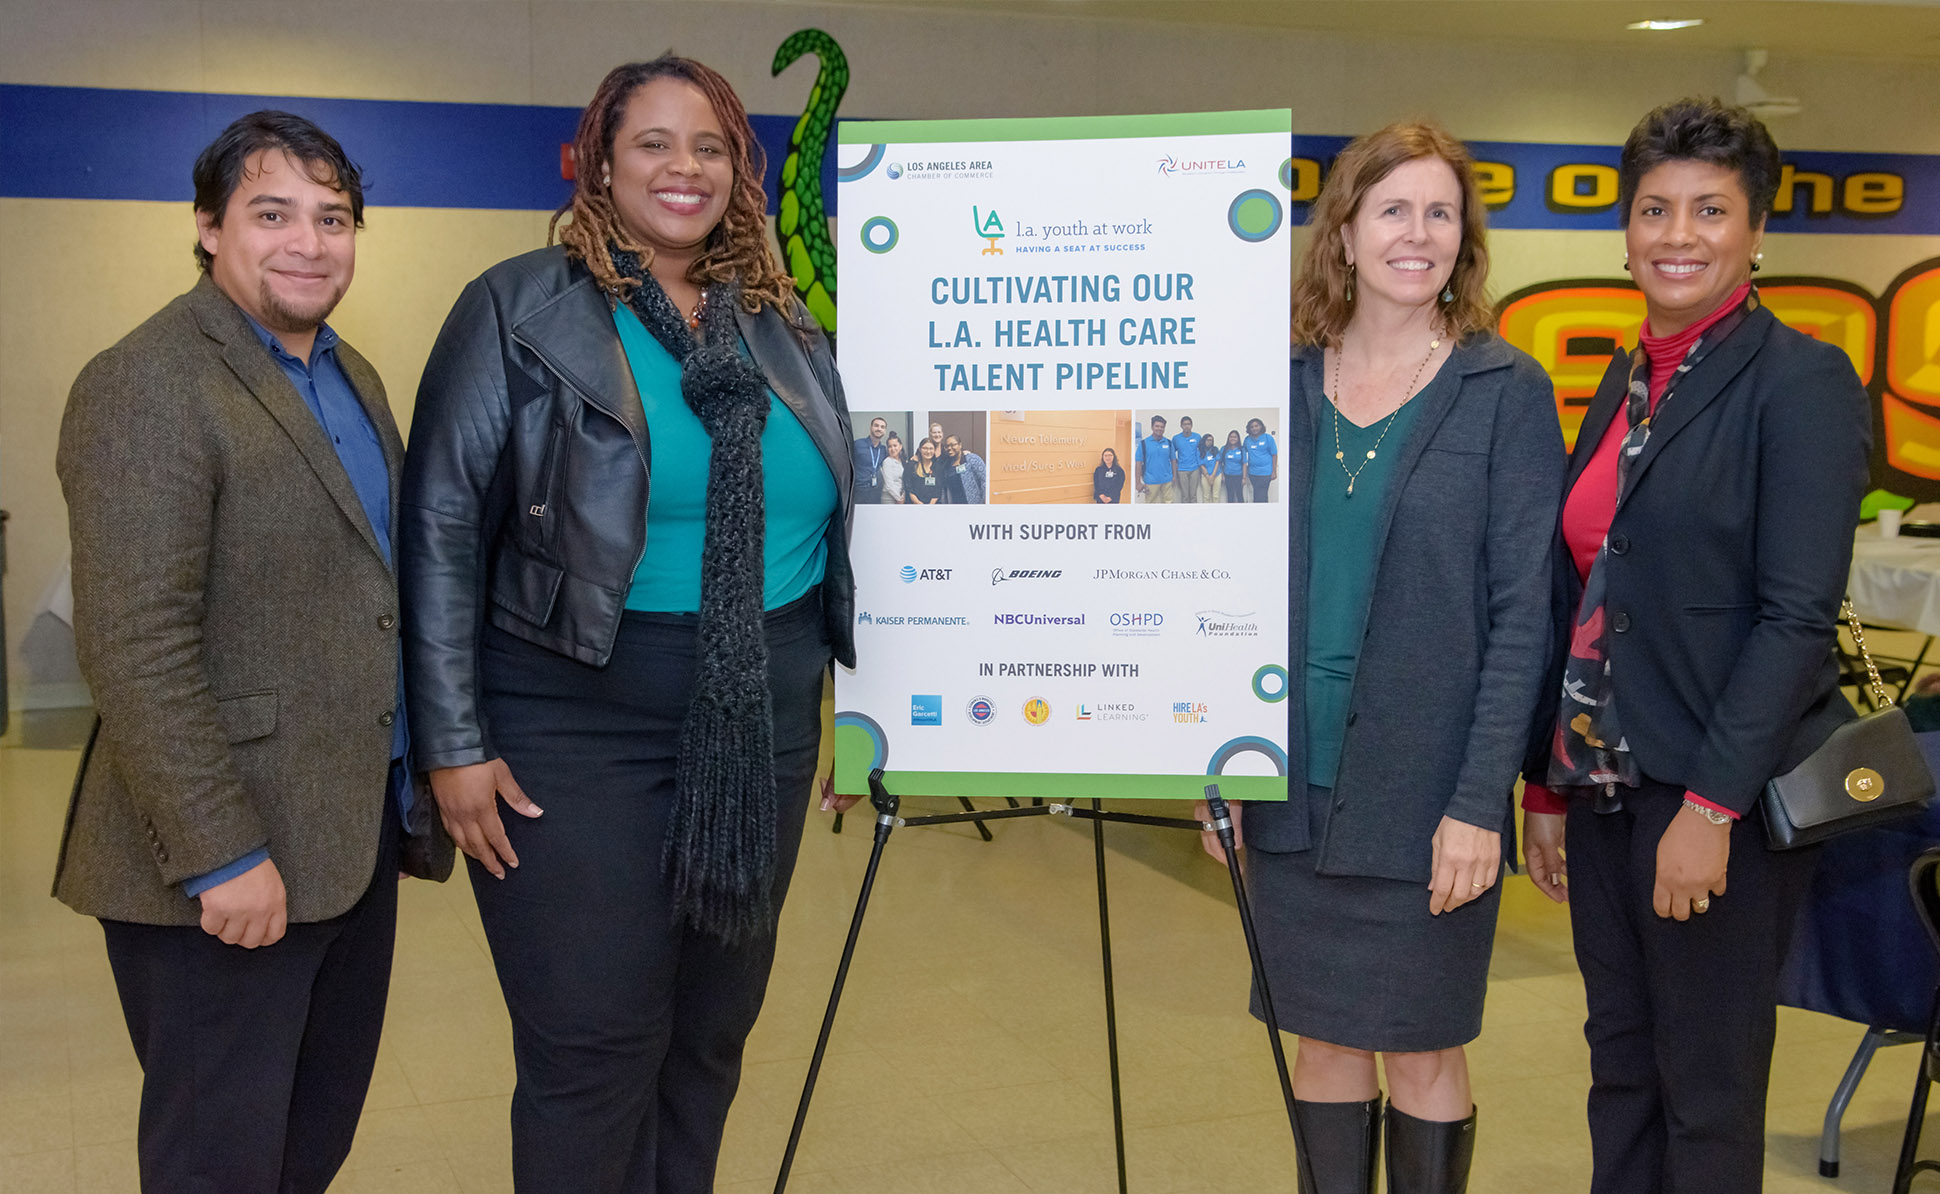 Read our <u>Health Care Talent Pipeline Impact Report</u> to learn about our work with L.A.'s health care employers and educators building pathways to high-demand, living wage careers in the industry for our local, diverse underserved communities